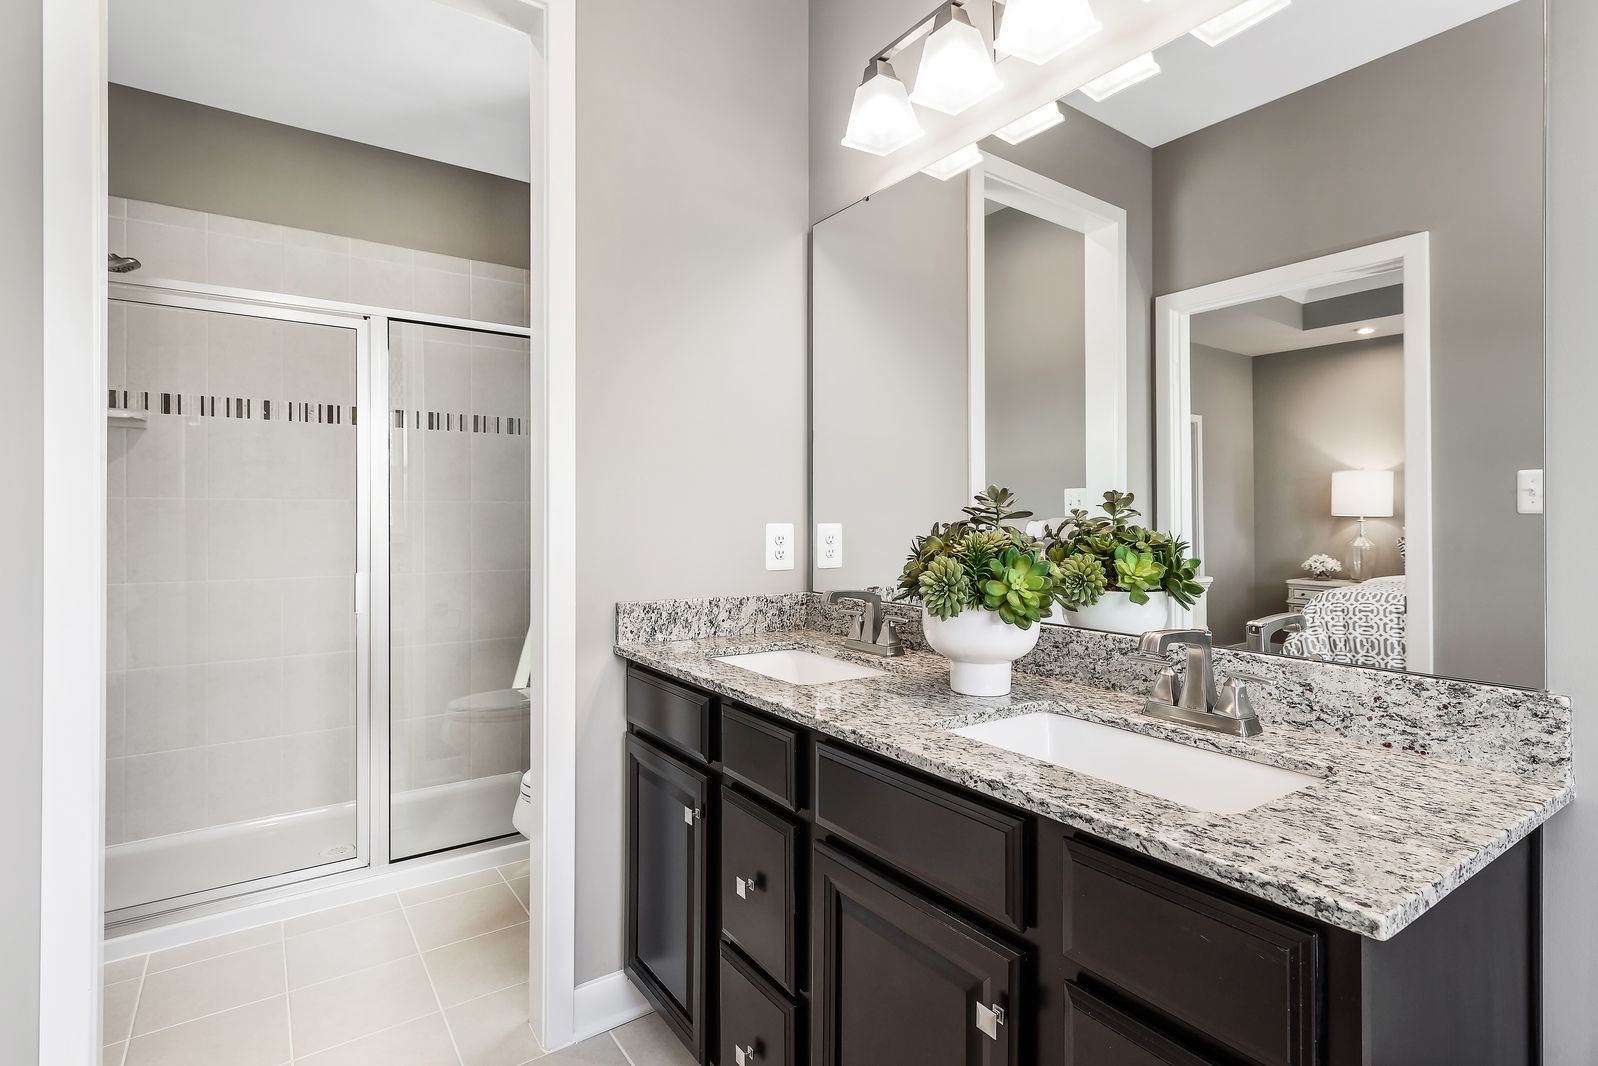 Bathroom featured in the Schubert By Ryan Homes in Morris County, NJ